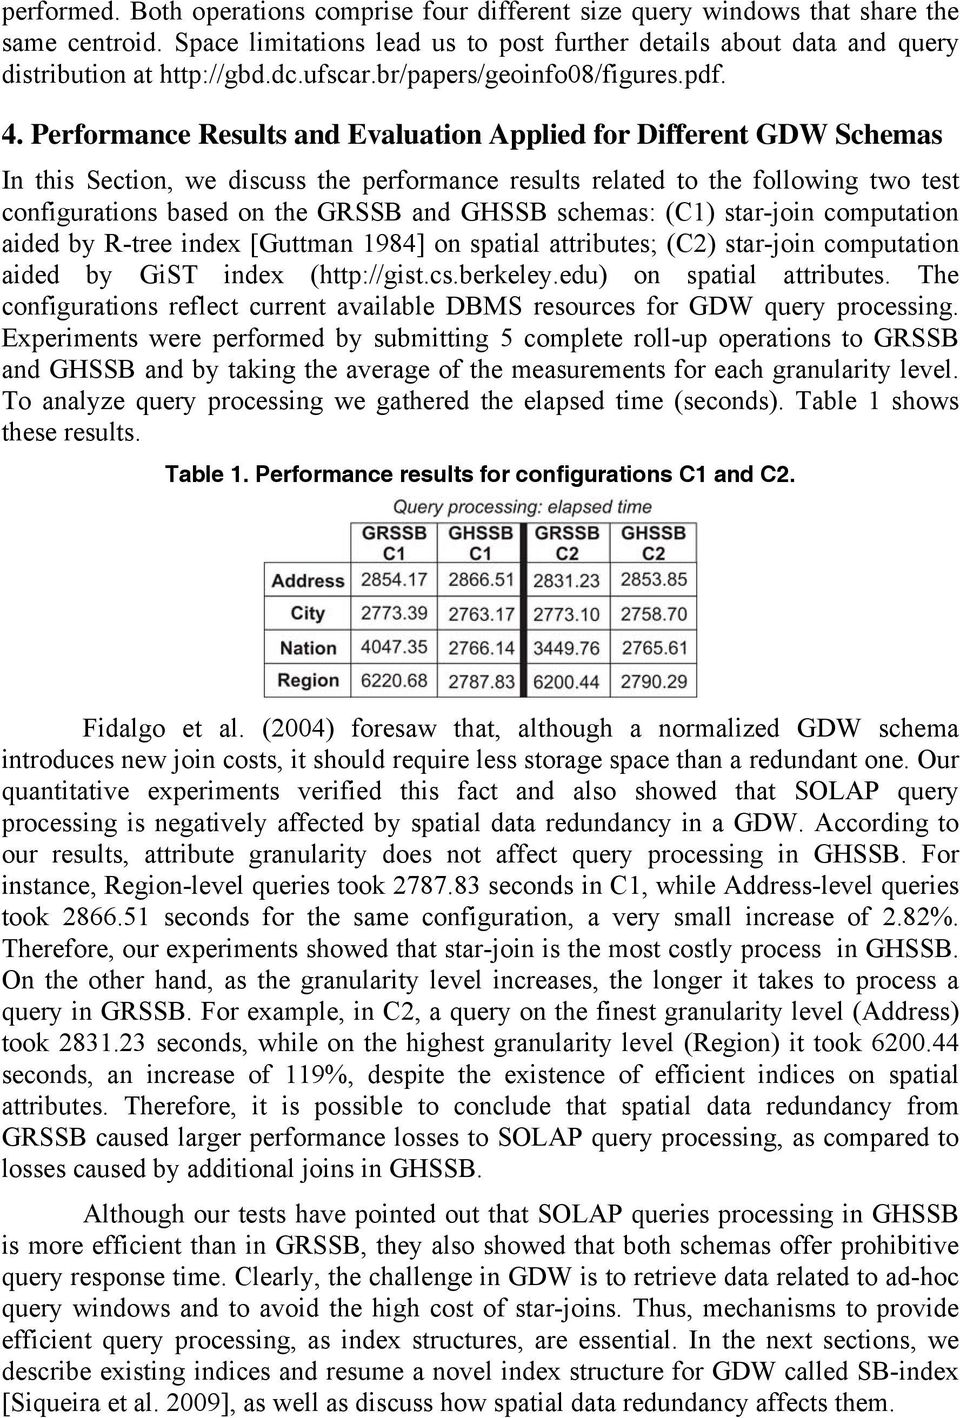 Performance Results and Evaluation Applied for Different GDW Schemas In this Section, we discuss the performance results related to the following two test configurations based on the GRSSB and GHSSB